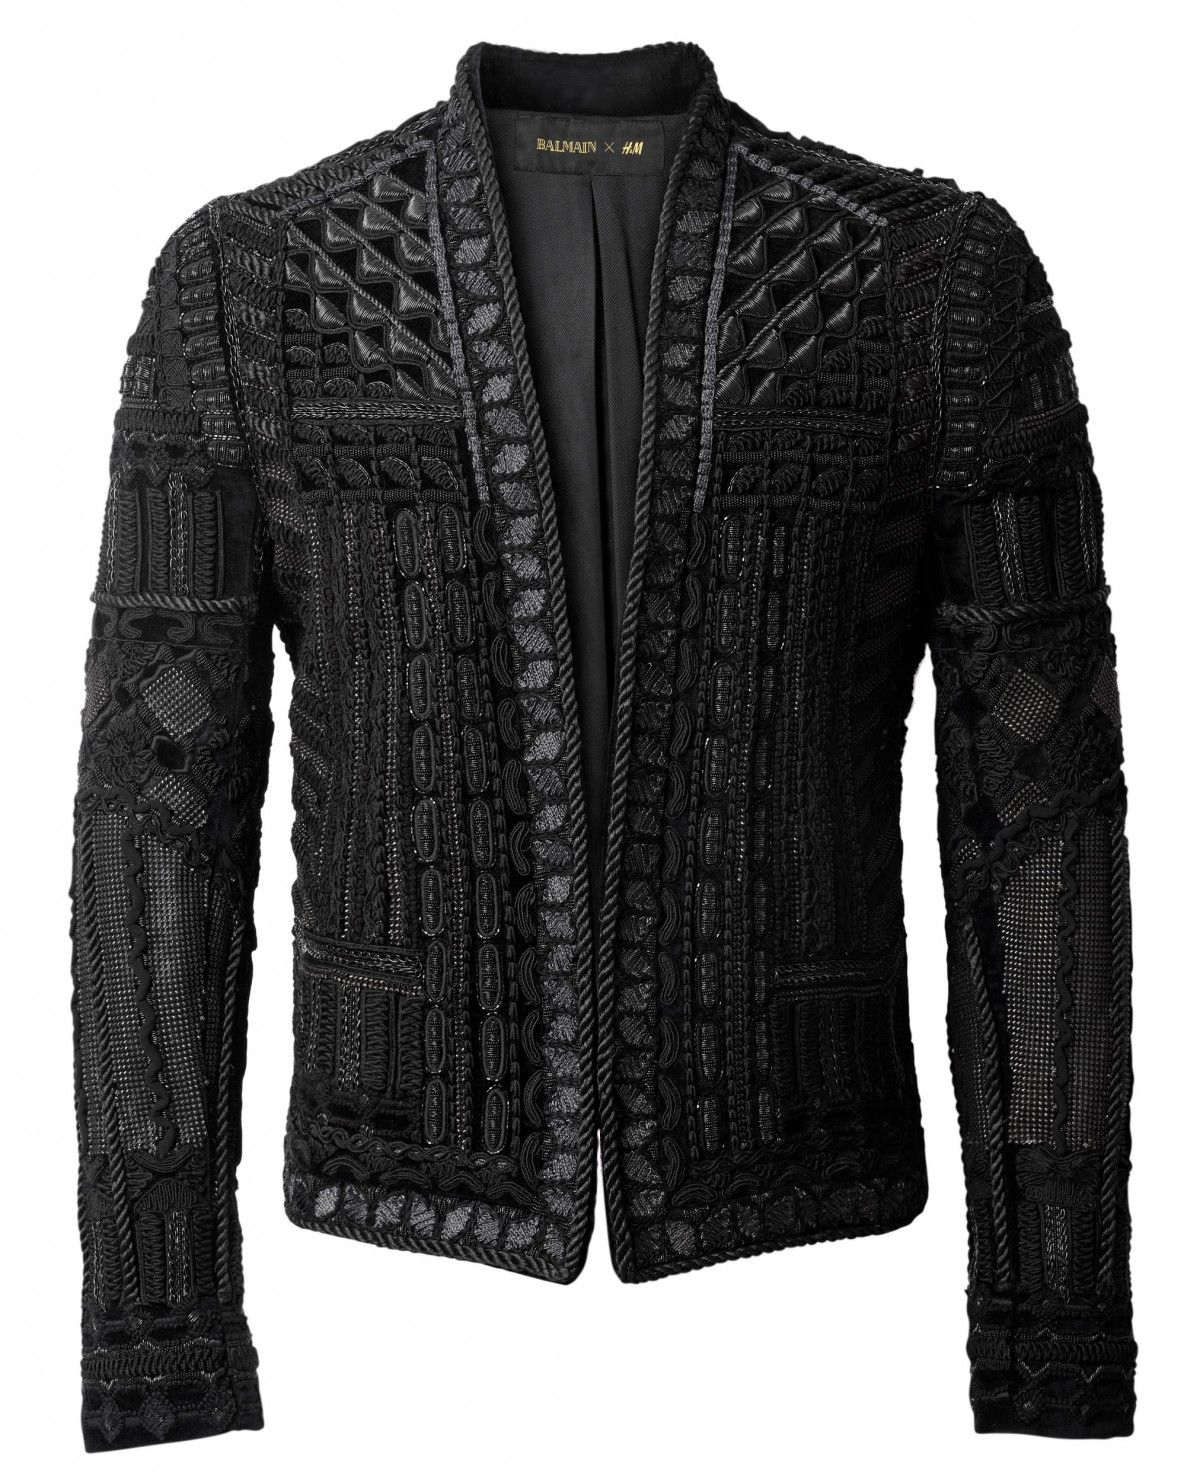 The 16 Most Outrageous Pieces in the Balmain x H M Collection ... d2eb682cbd32